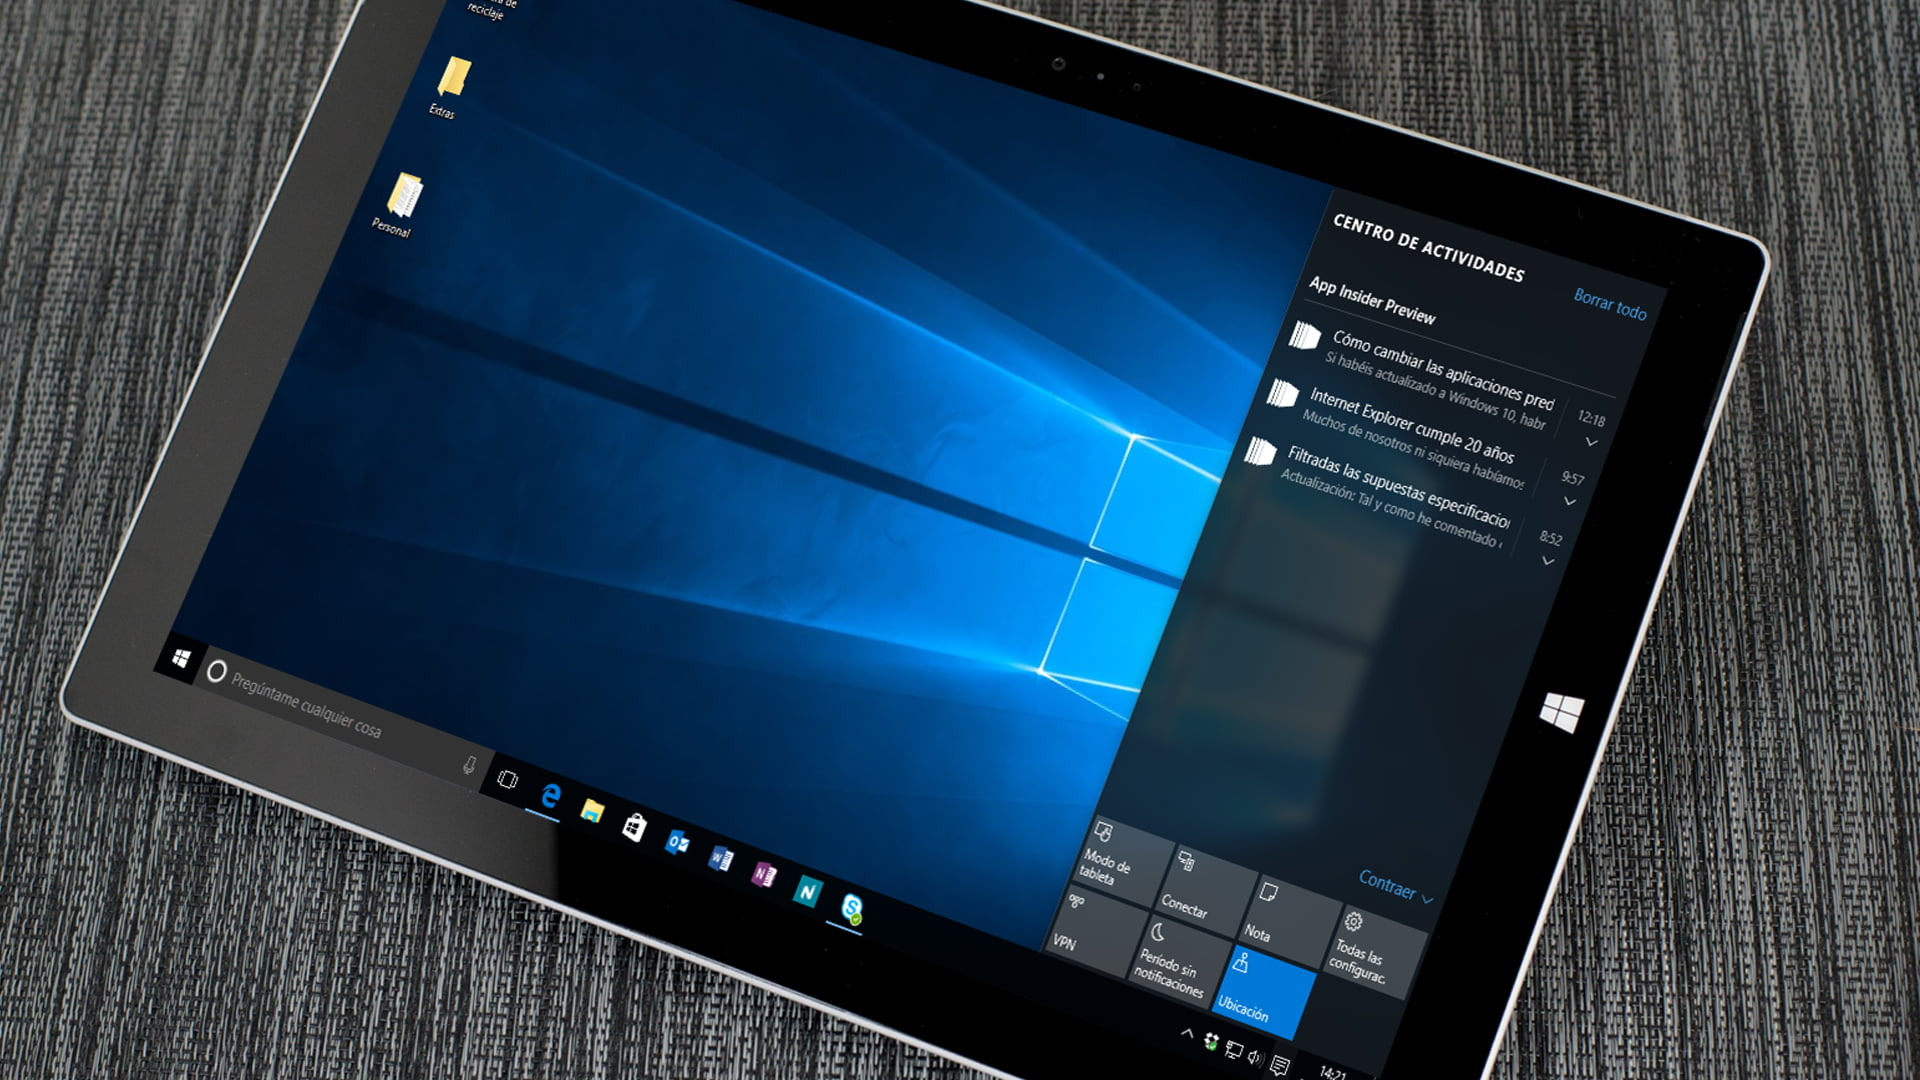 El centro de notificaciones en Windows 10